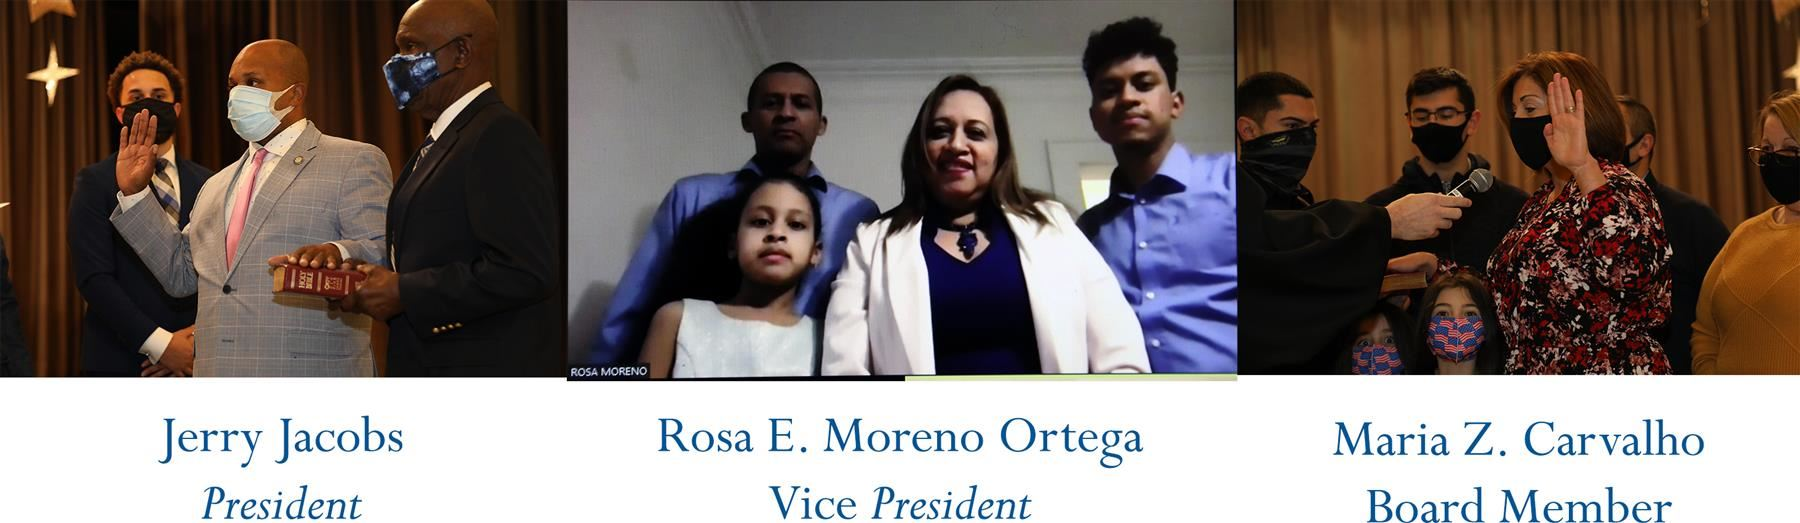 EBOE Selects Jerry Jacobs as President, Rosa E. Moreno Ortega as Vice President at Reorganization Meeting